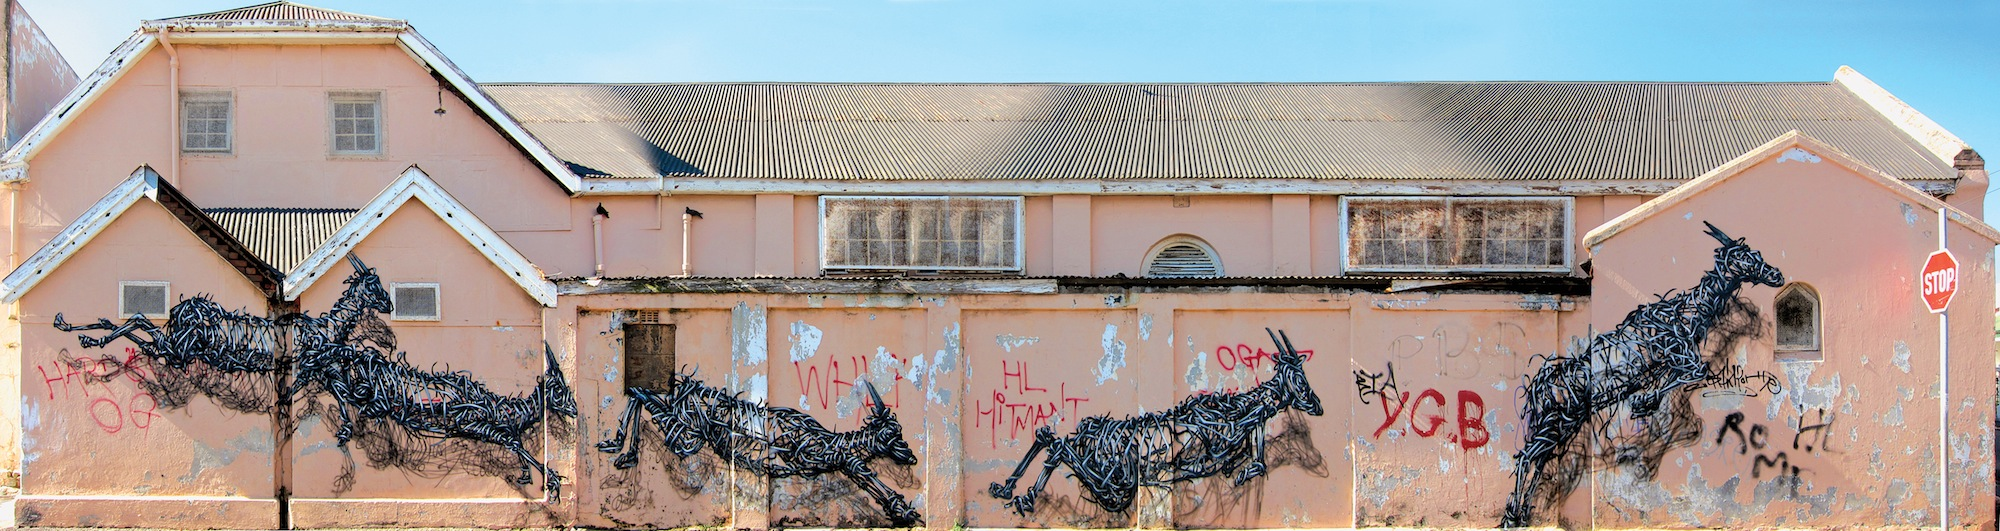 photo essay street art goes global ca antelopes by the artist